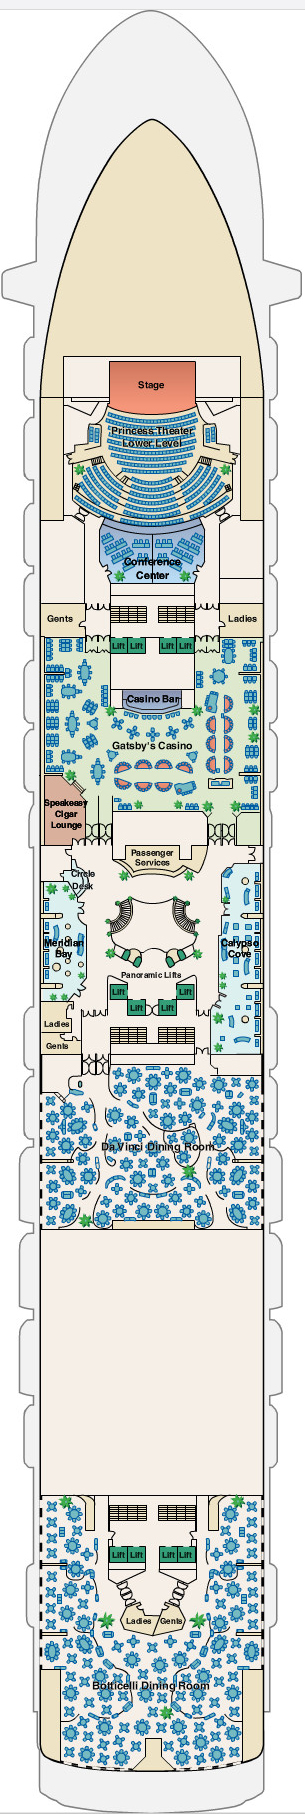 Emerald Princess Fiesta Deck 6 layout